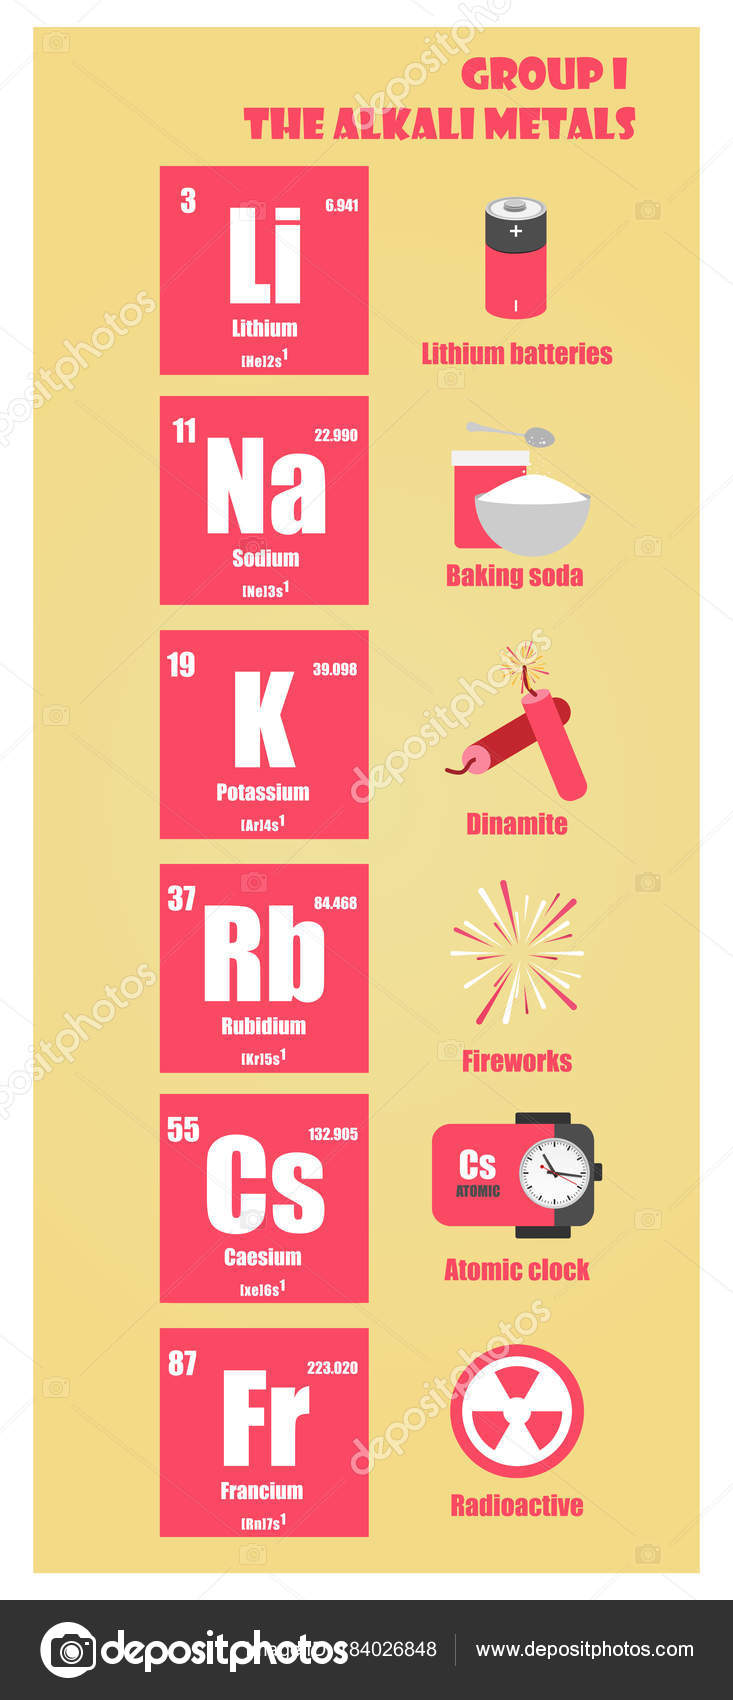 Periodic table of element group i the alkali metals stock vector periodic table of element group i the alkali metals stock vector urtaz Image collections